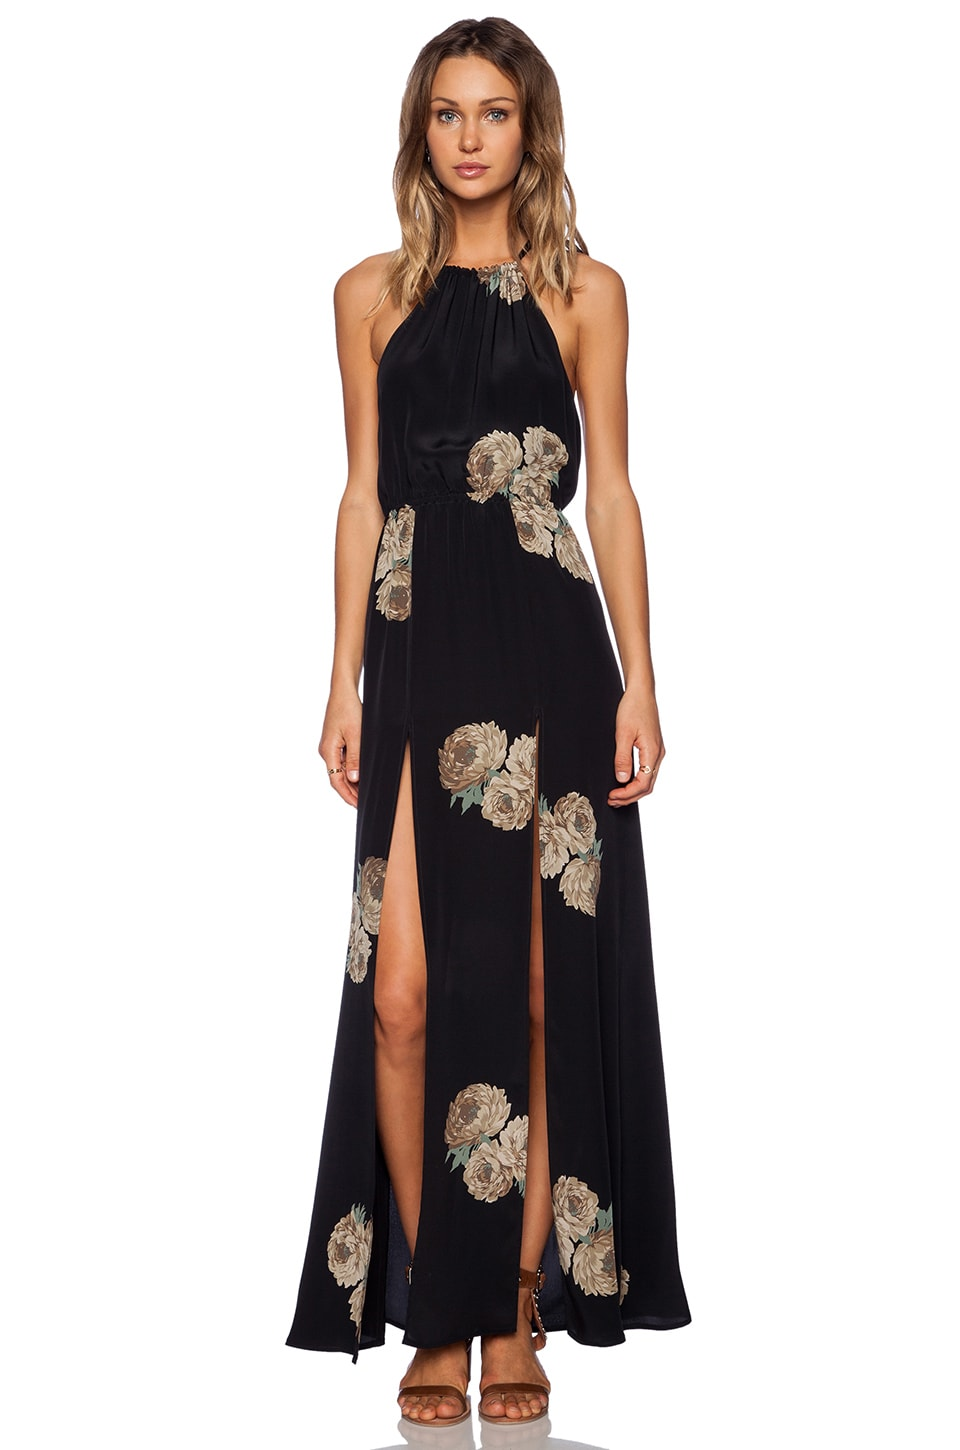 STONE_COLD_FOX x REVOLVE Onyx Gown in Dharma Print